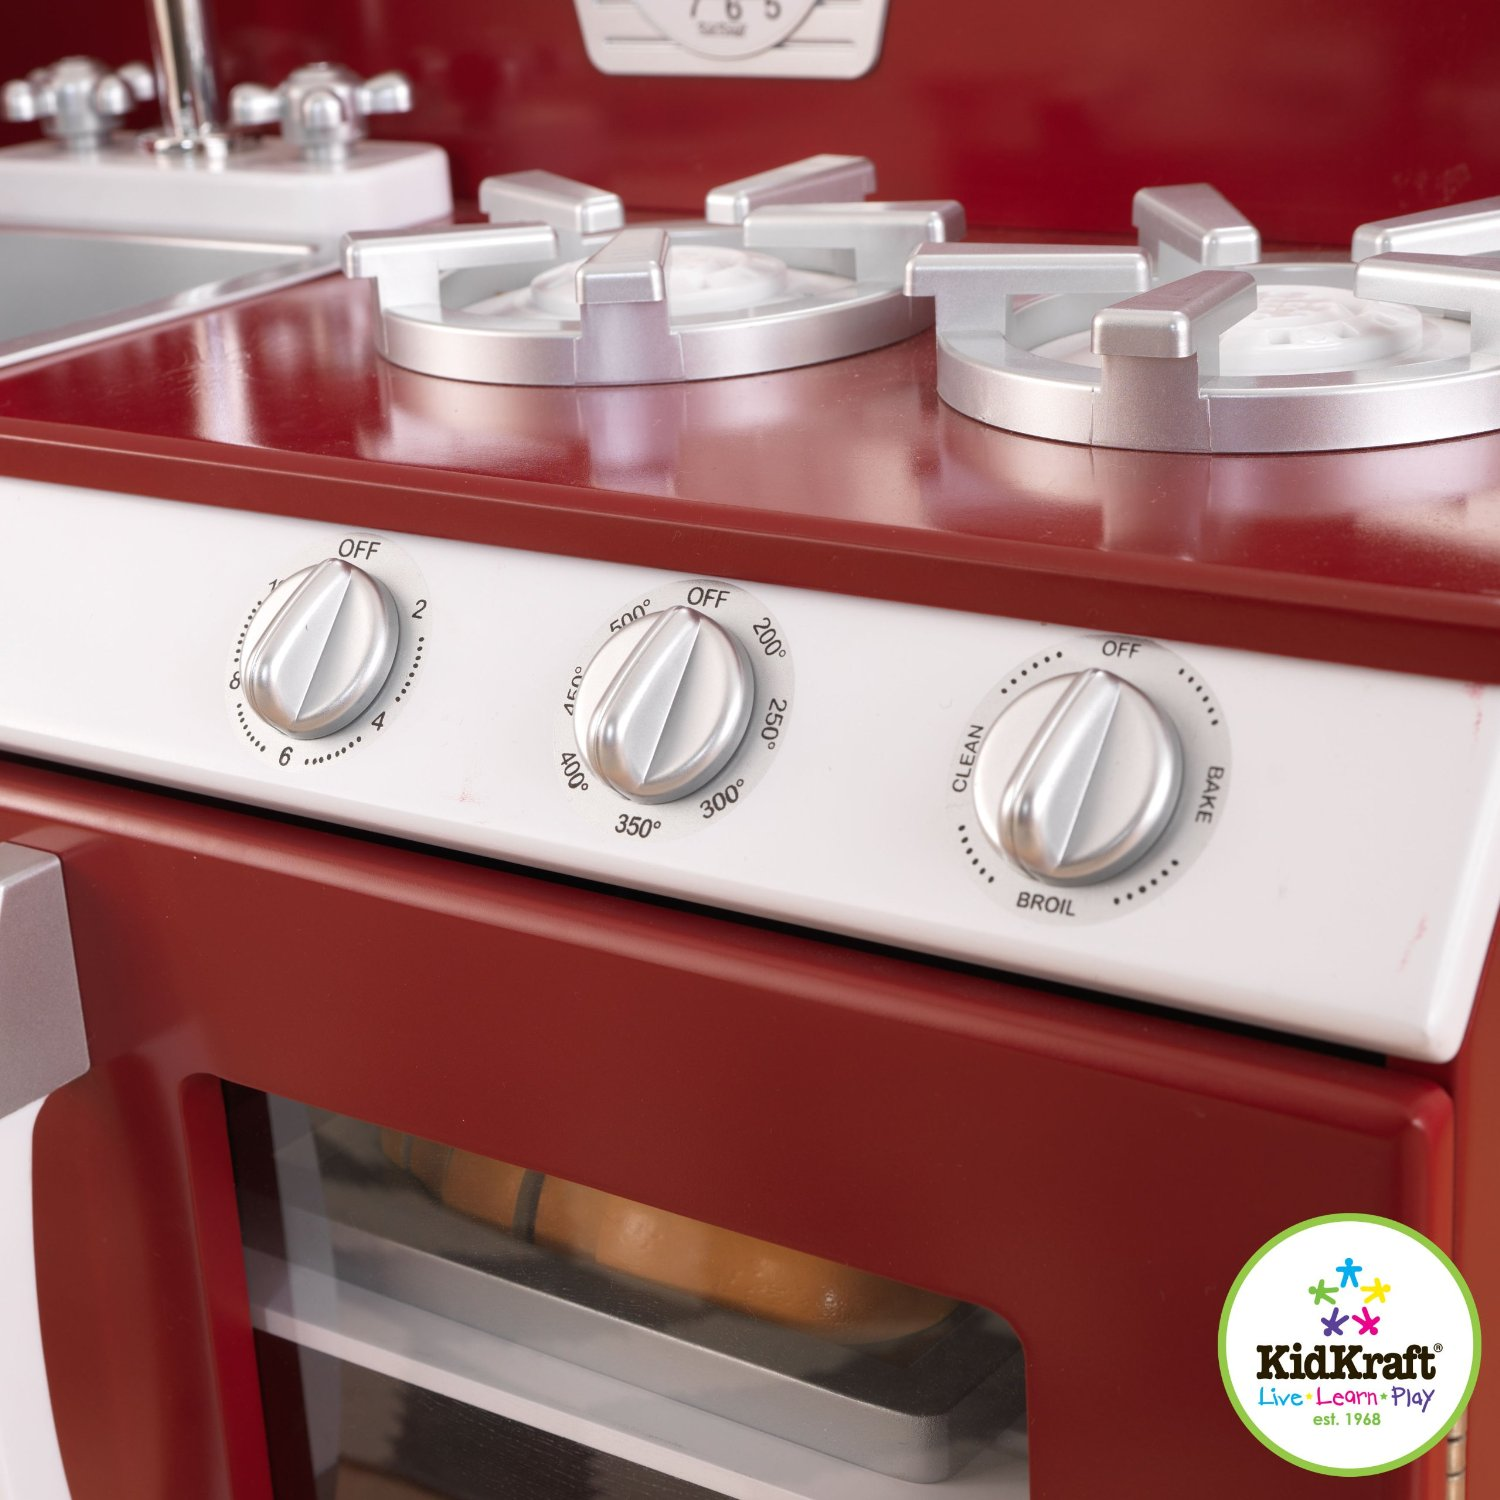 kidkraft  piece red retro kitchen and refrigerator  walmart, Kitchen design